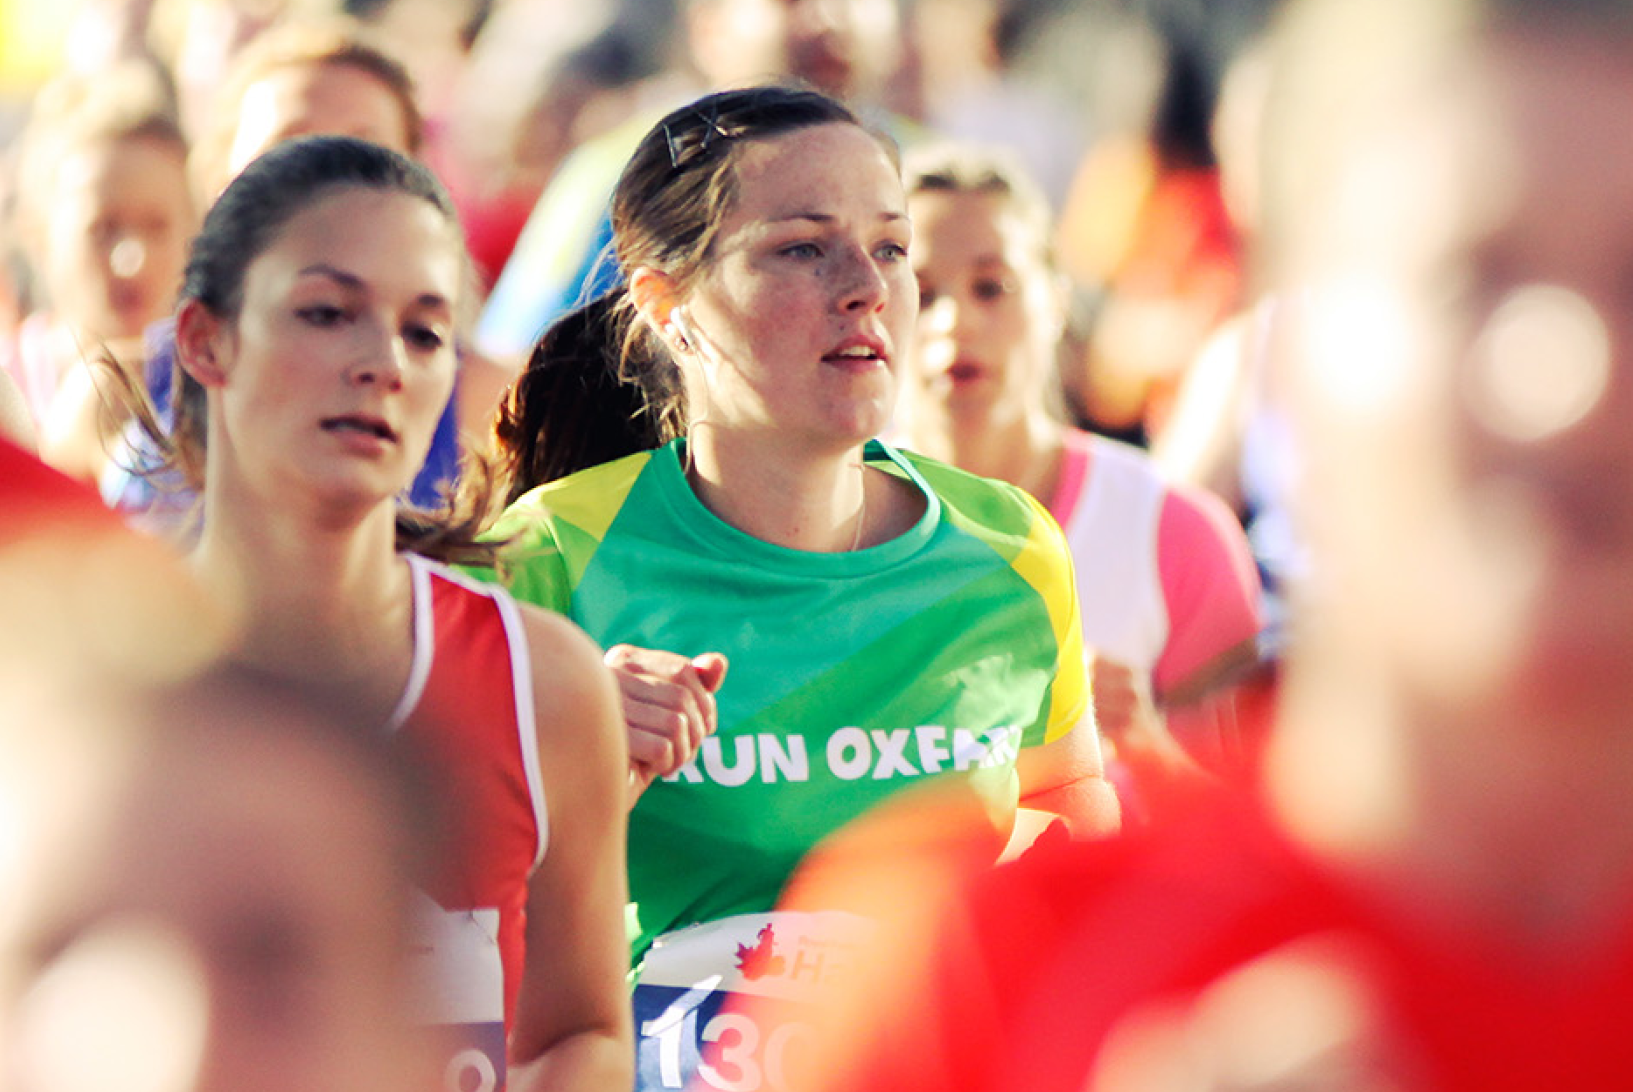 Run for Oxfam